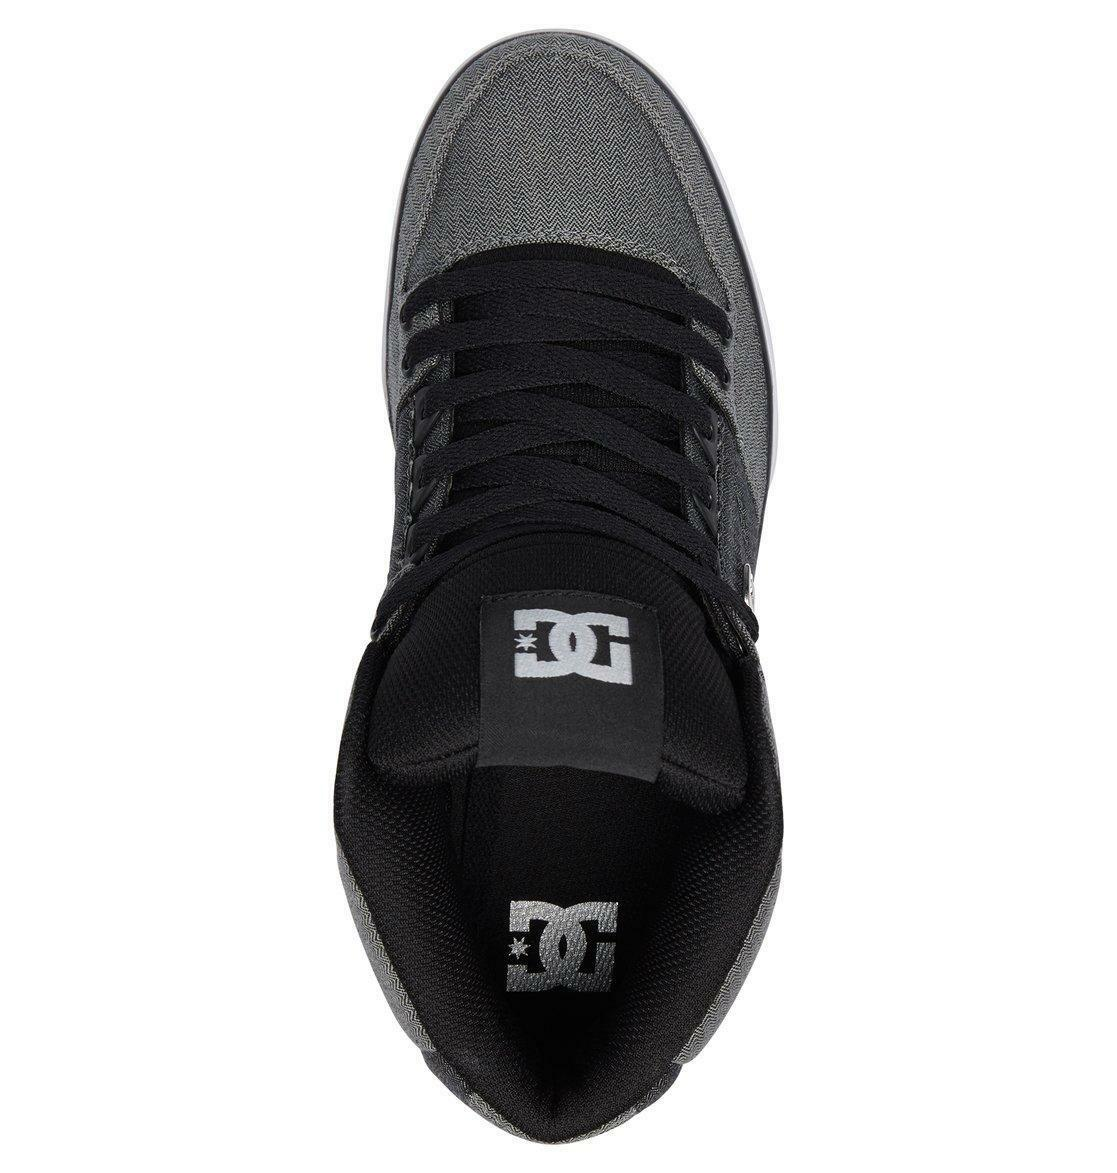 DC Schuhe PURE MENS HI TOP BOOTS.BOXED PURE Schuhe SE HIGH GREY SKATE TRAINER Schuhe 8S 46 XSW 150511